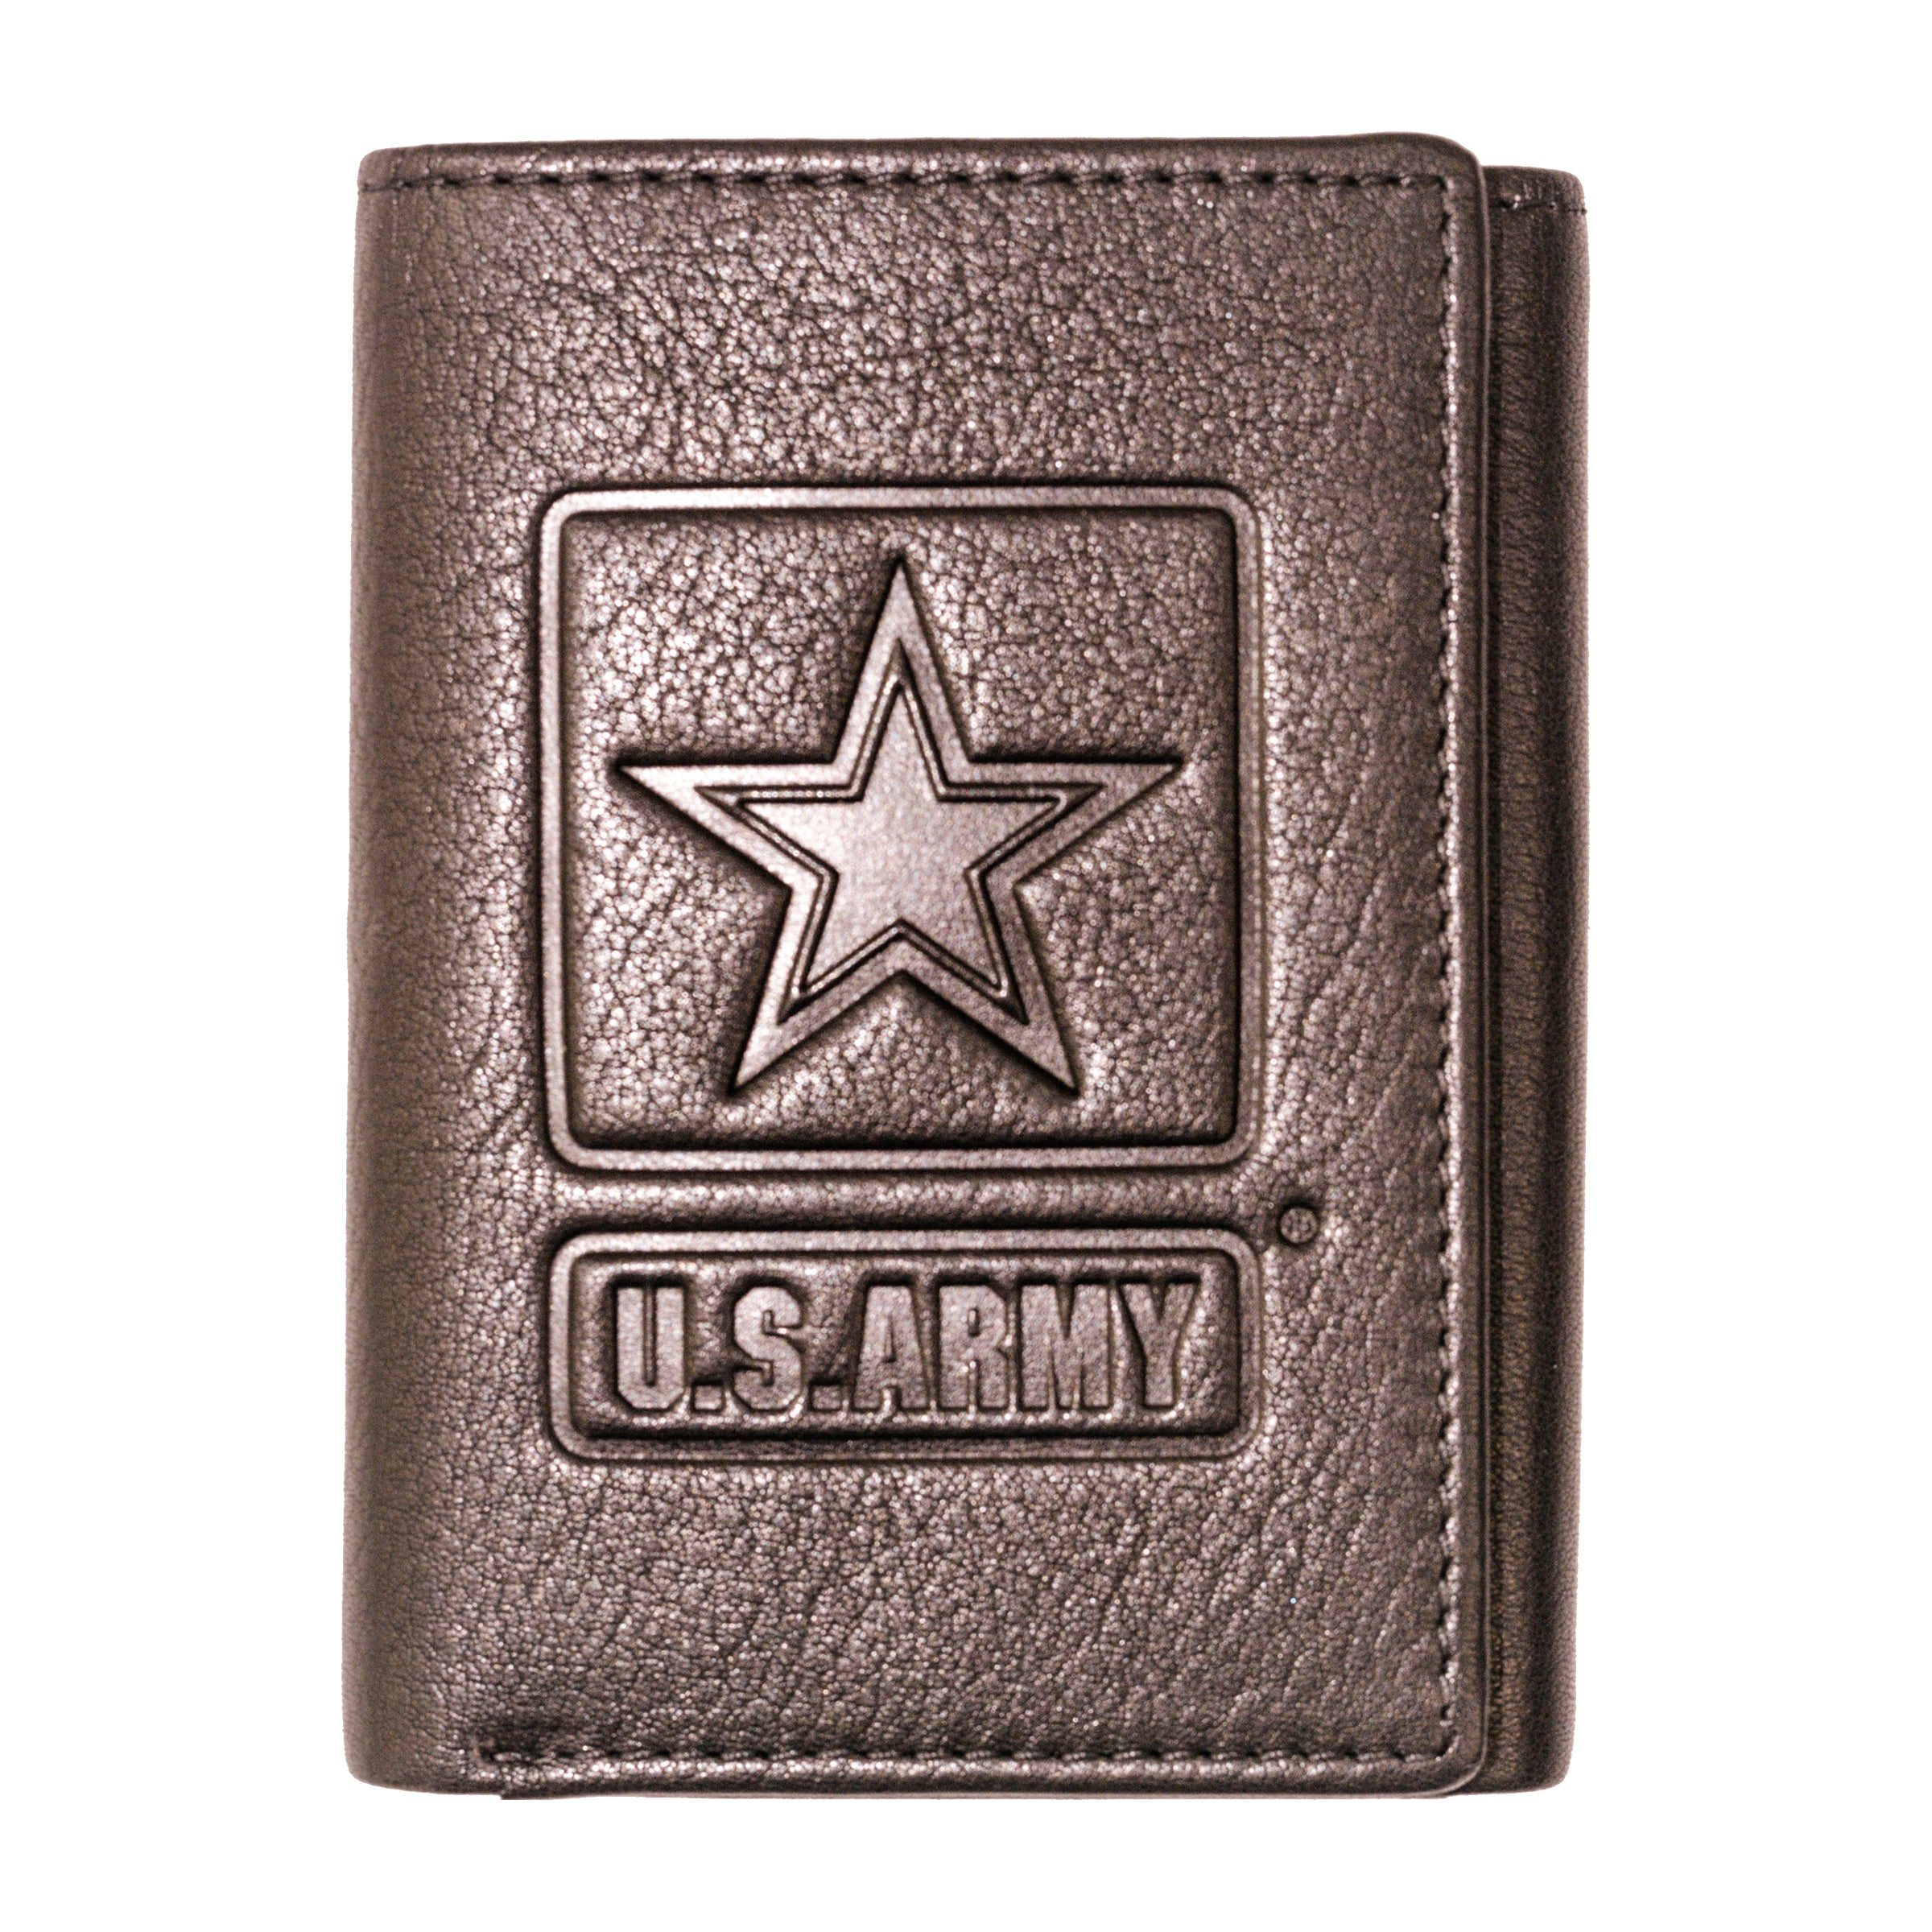 U.S. Army Trifold Wallet (12pc case)